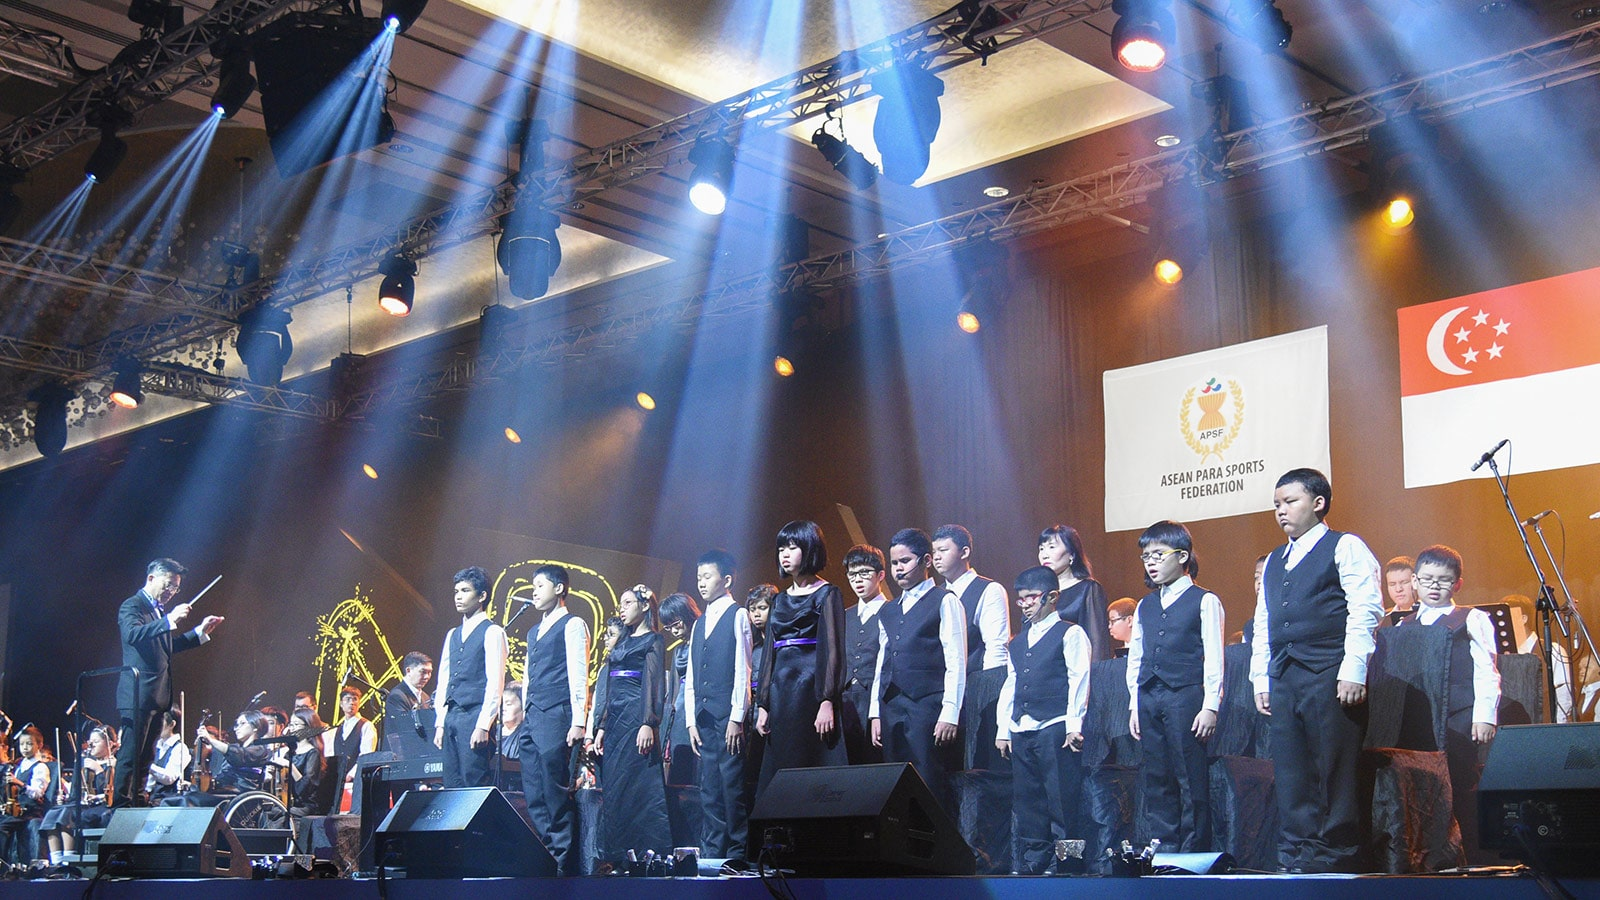 8th ASEAN Para Games closing ceremony